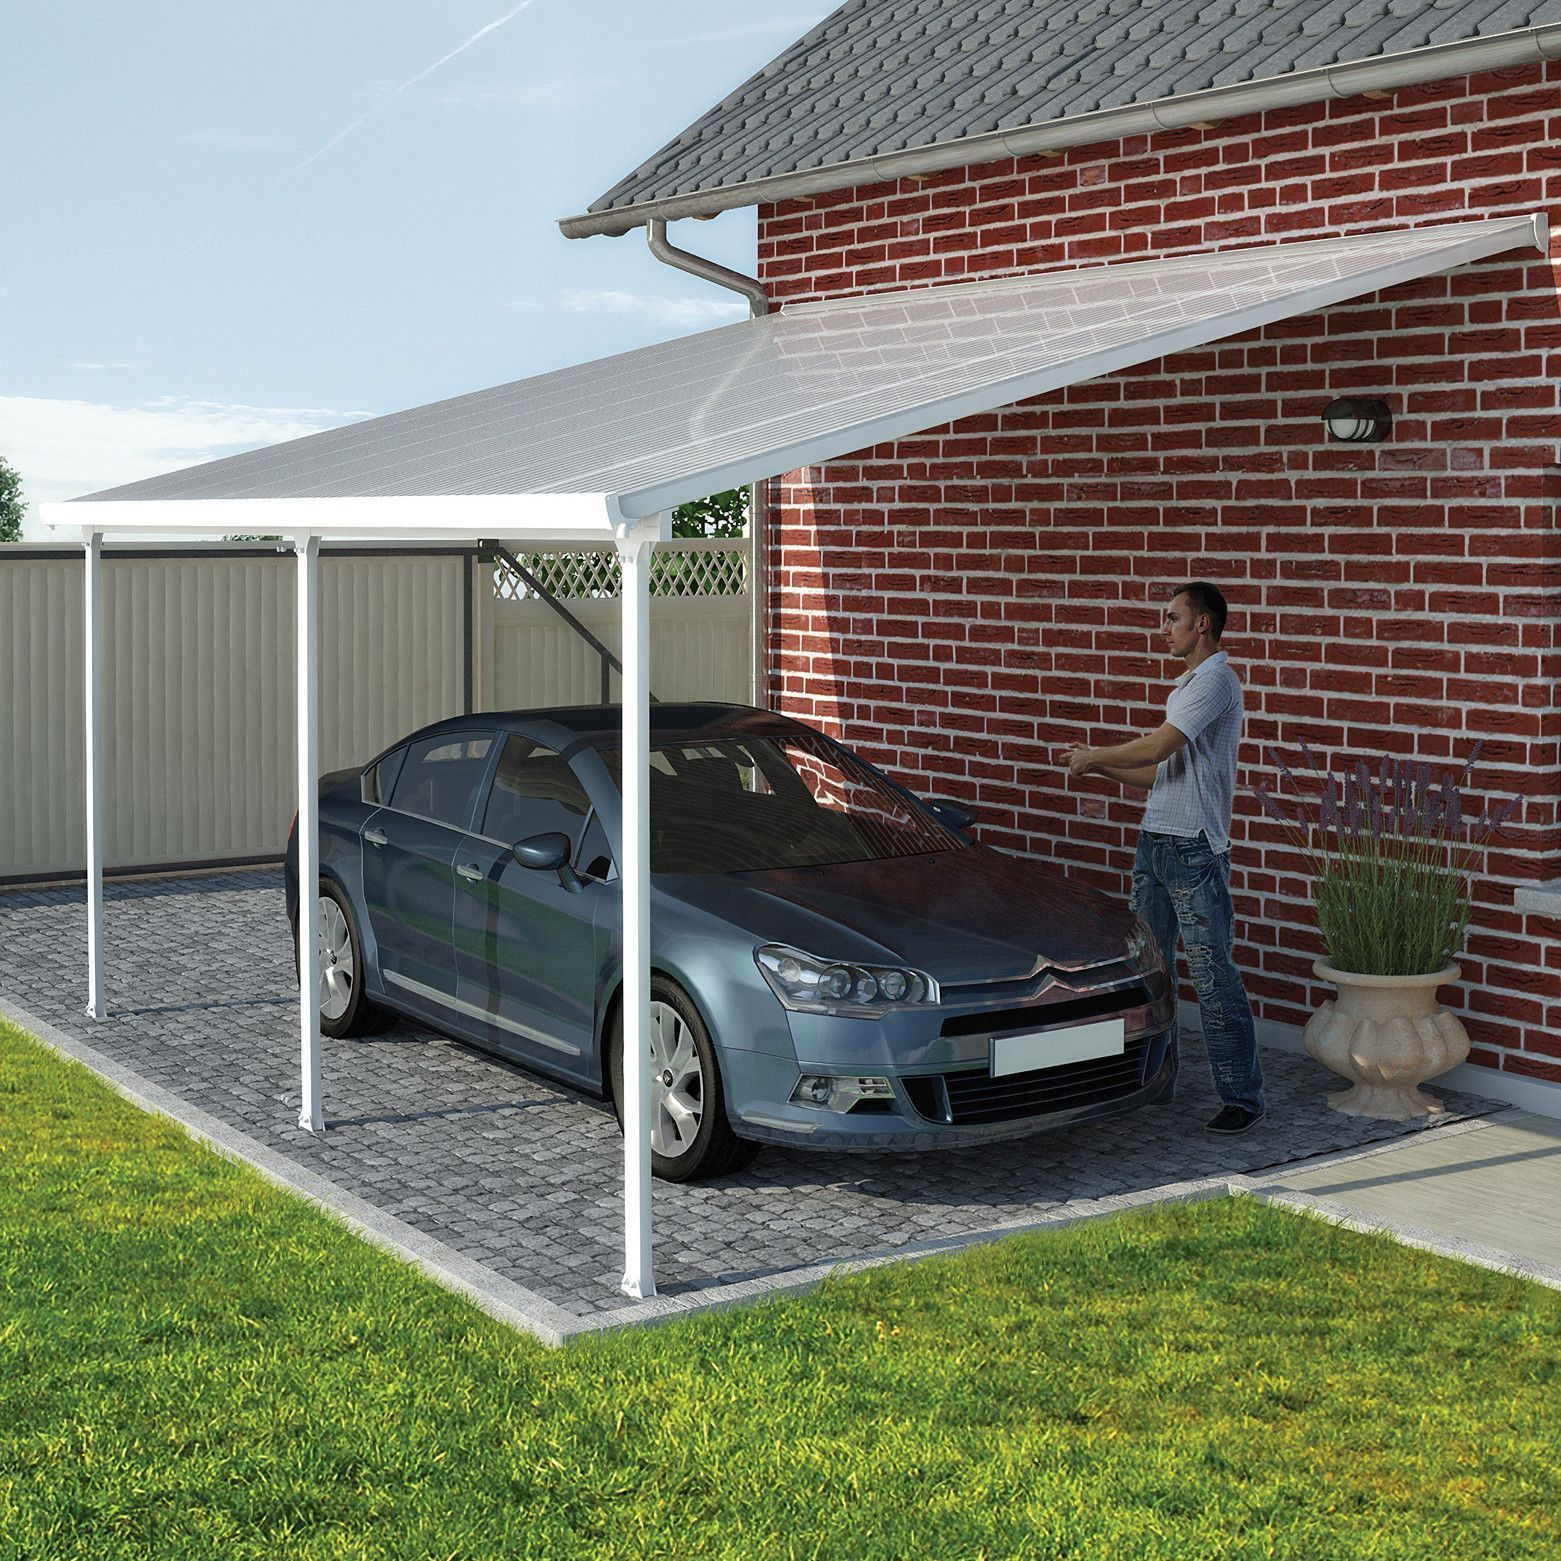 Feria 26 Ft W X 13 Ft D Plastic Standard Patio Awning Diy Carport Carport Designs Metal Carport Kits